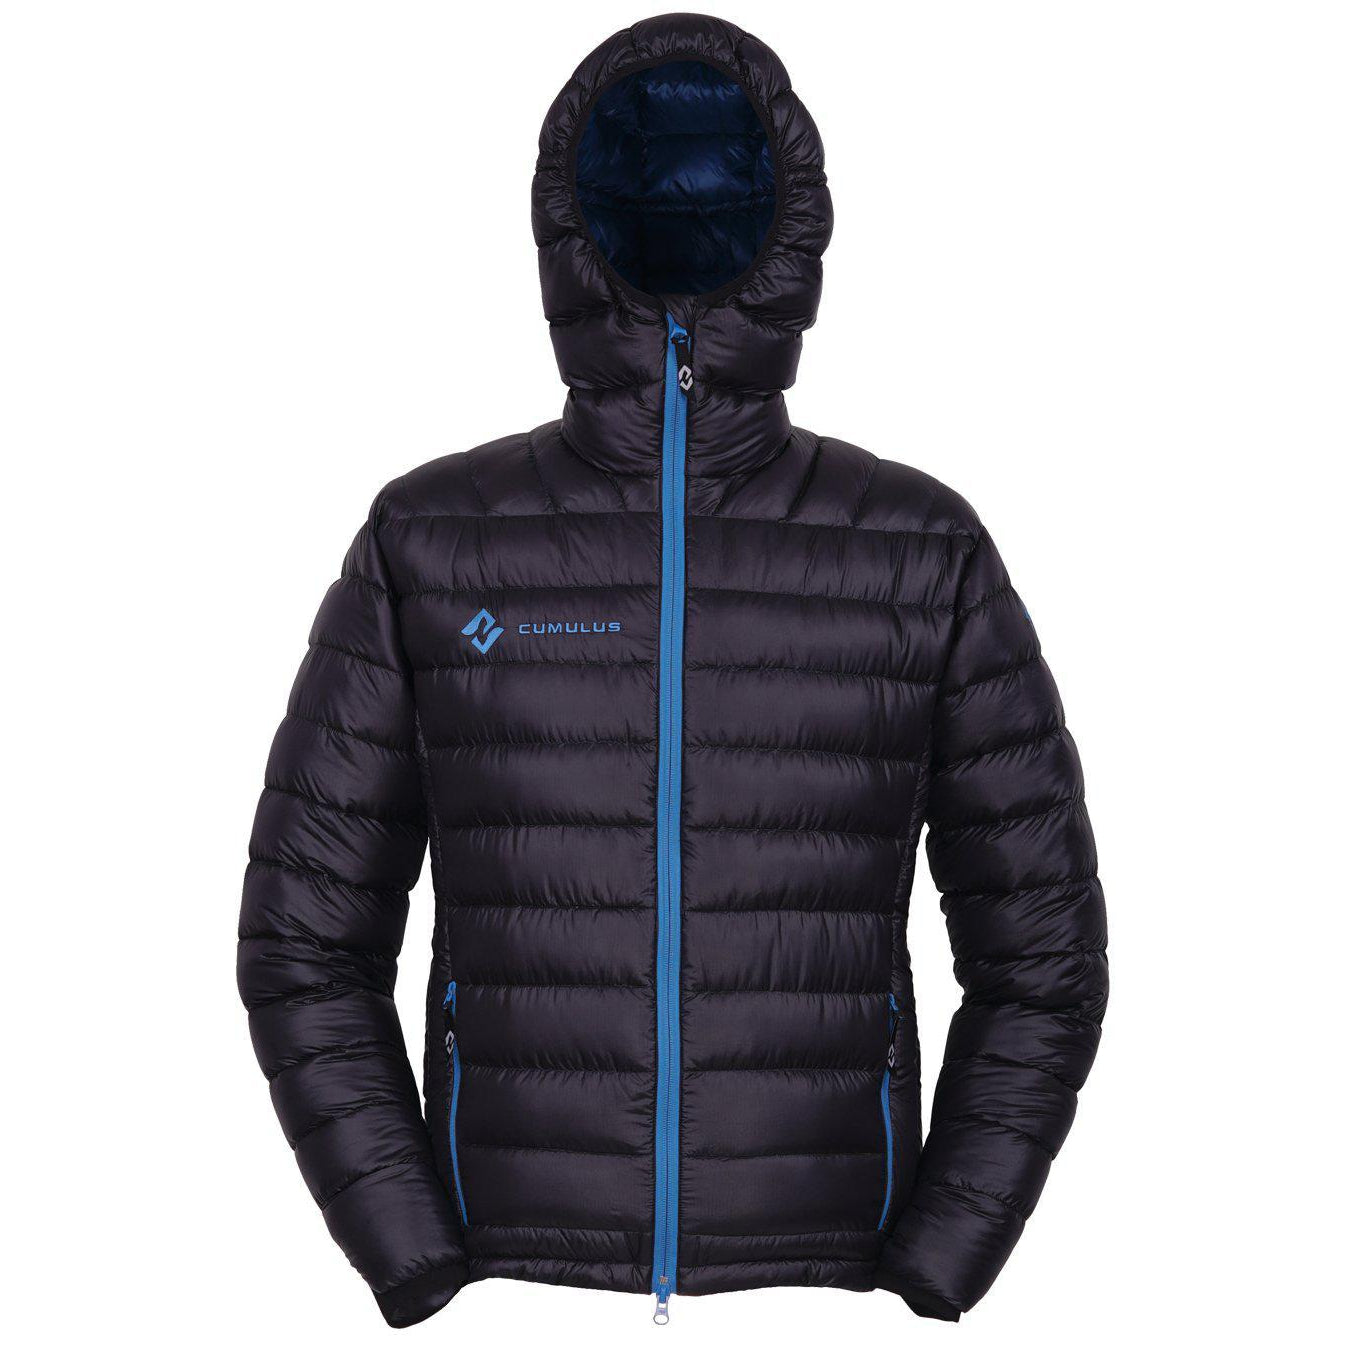 Cumulus Incredilite Mens Polish Down Jacket w/ Hood